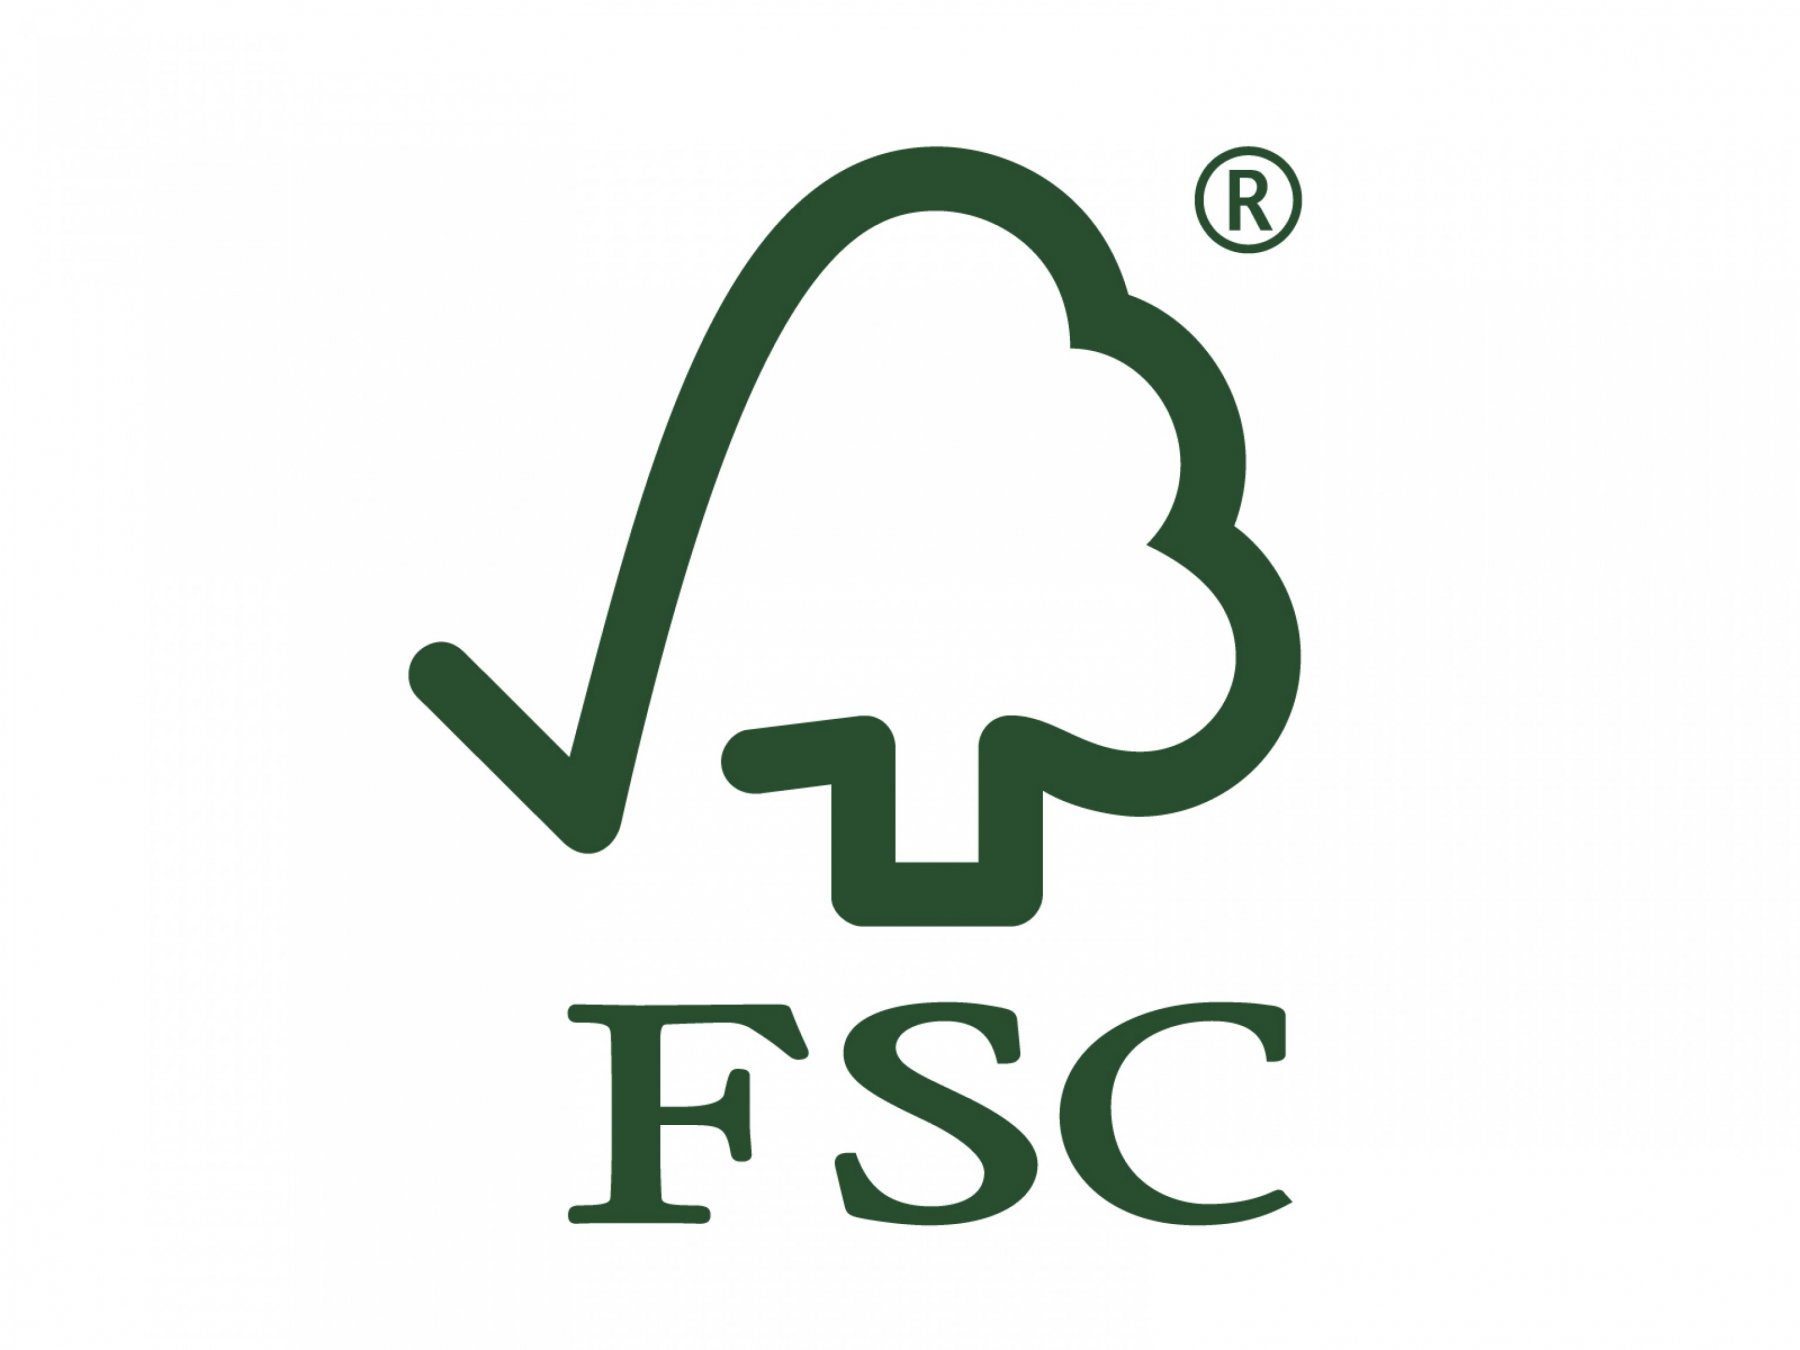 Using Fsc Trademarks Fsc International